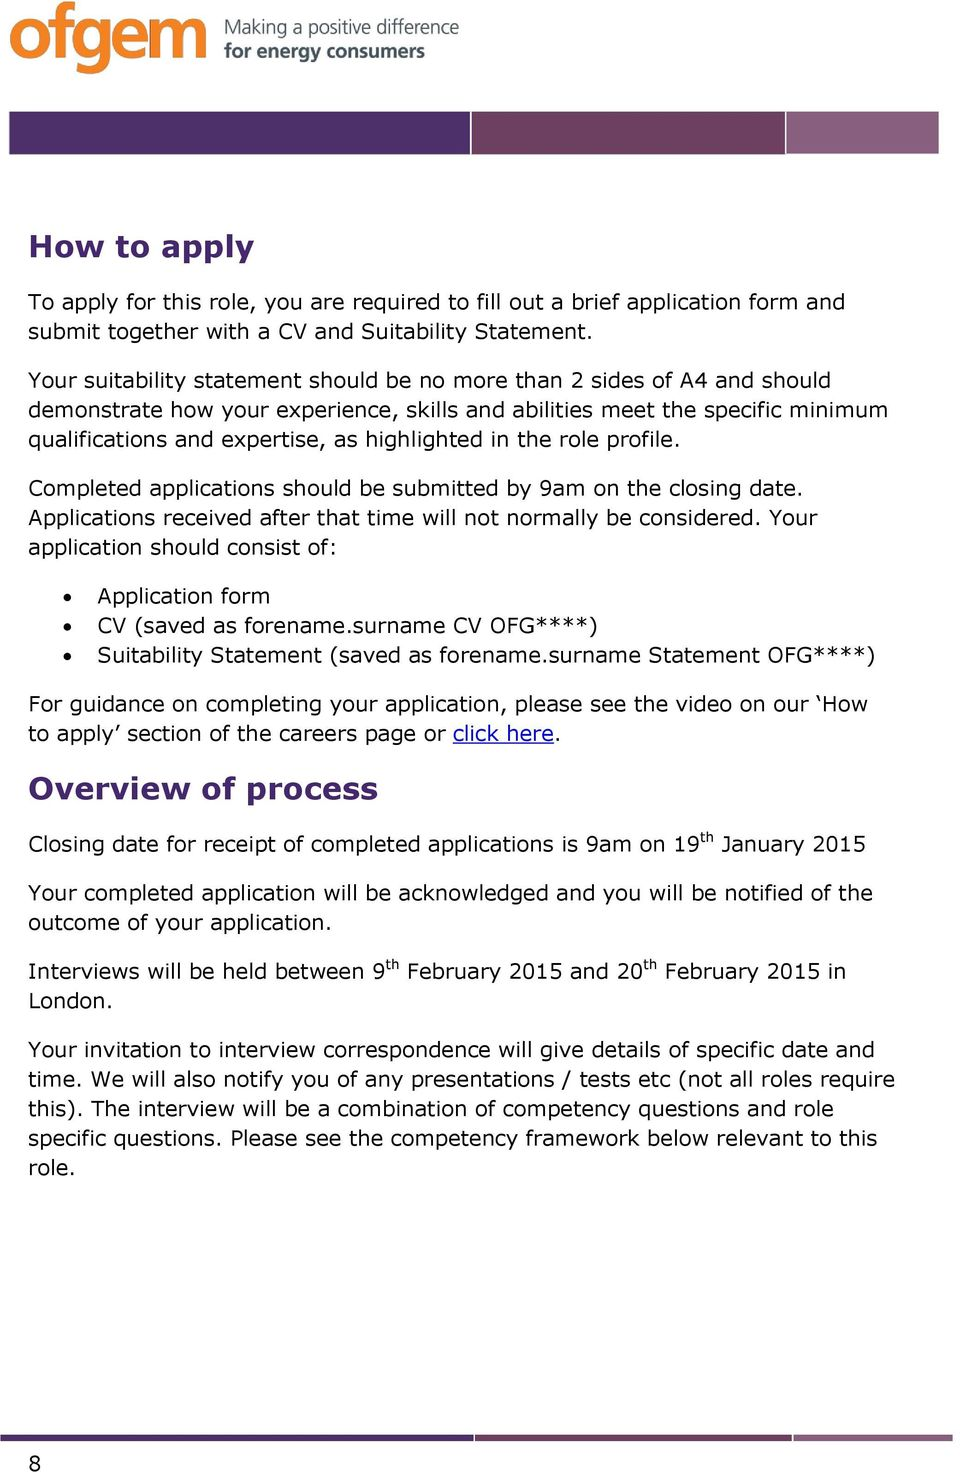 in the role profile. Completed applications should be submitted by 9am on the closing date. Applications received after that time will not normally be considered.